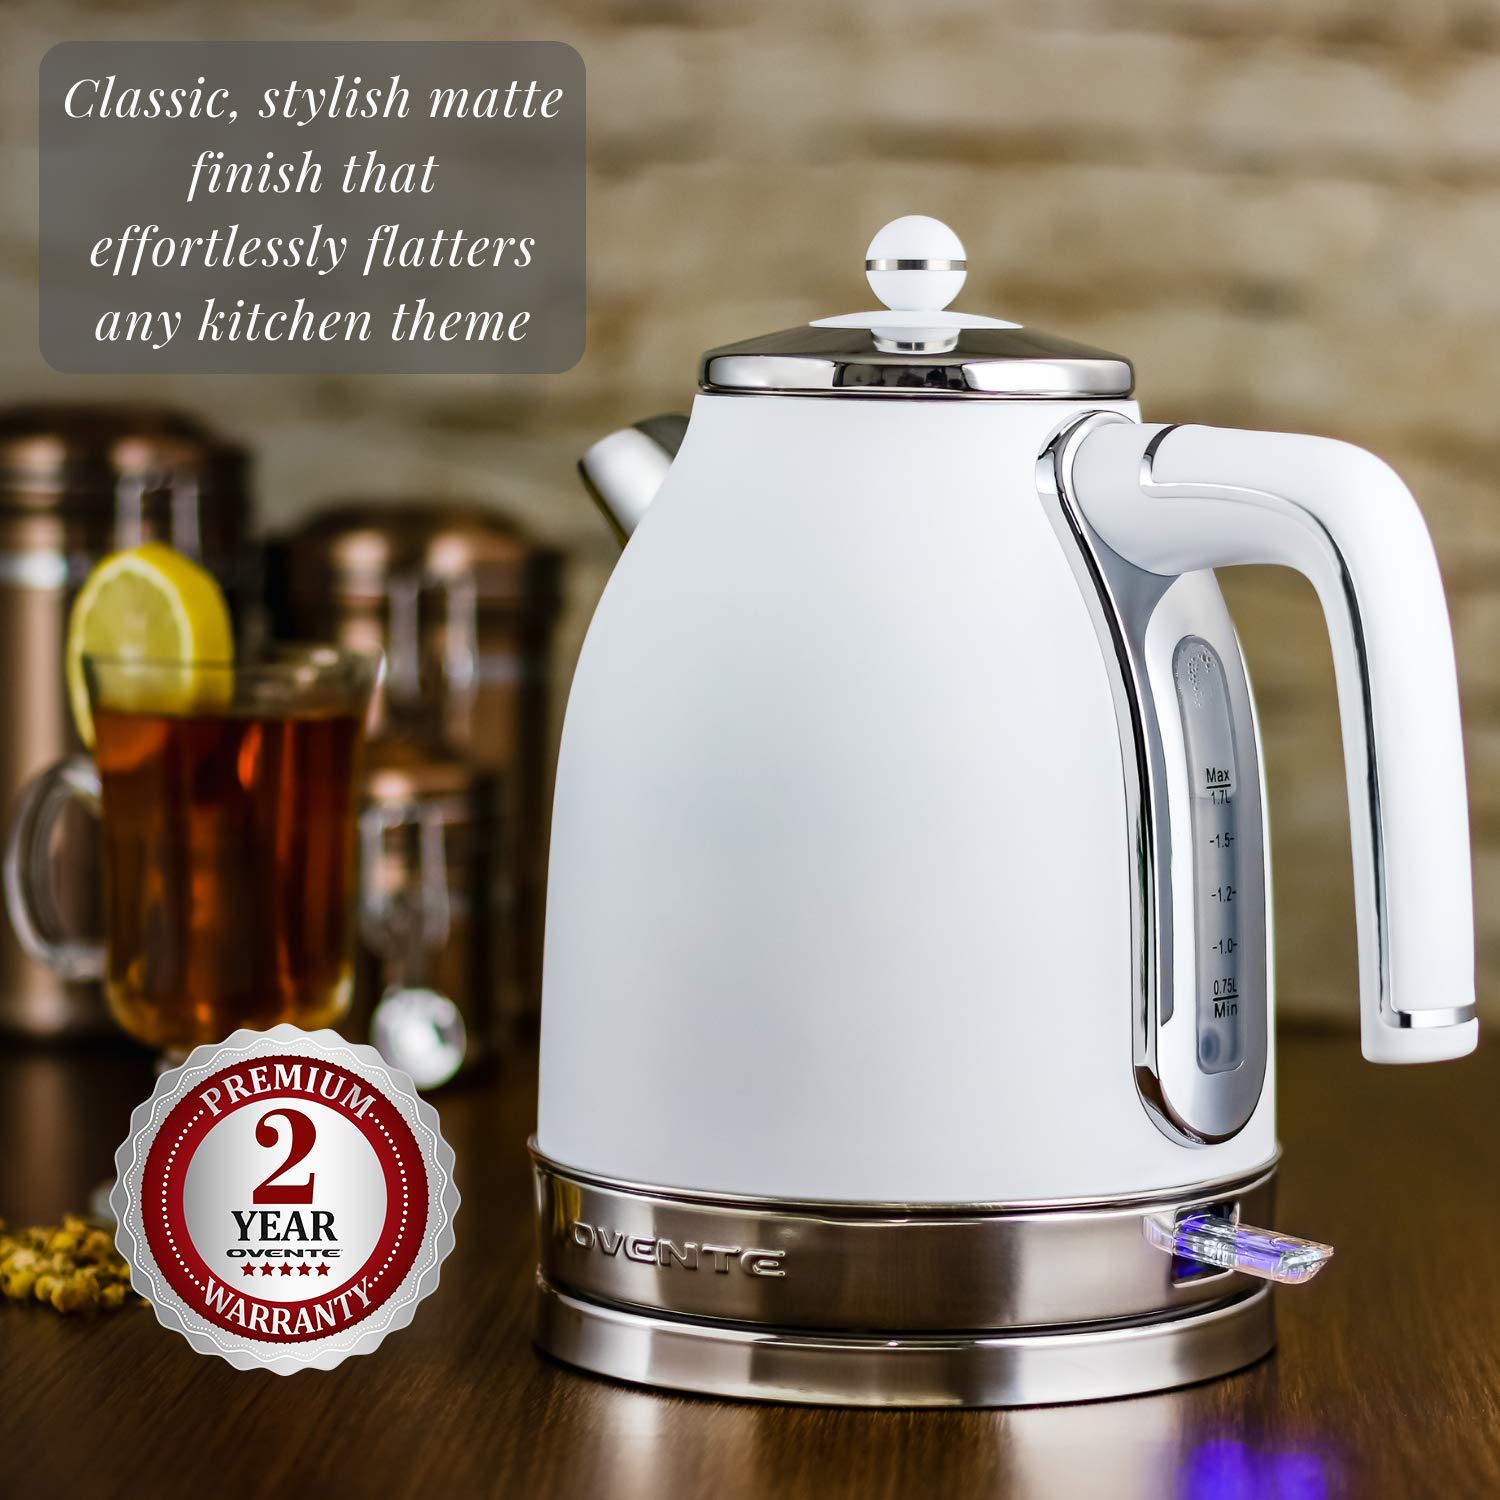 Ovente KS777W Victoria Collection Electric Kettle, Premium Matte Stainless Steel & BPA-Free, Removable Anti-Scale Filter, Centered Water Gauge, White, 1.7L,